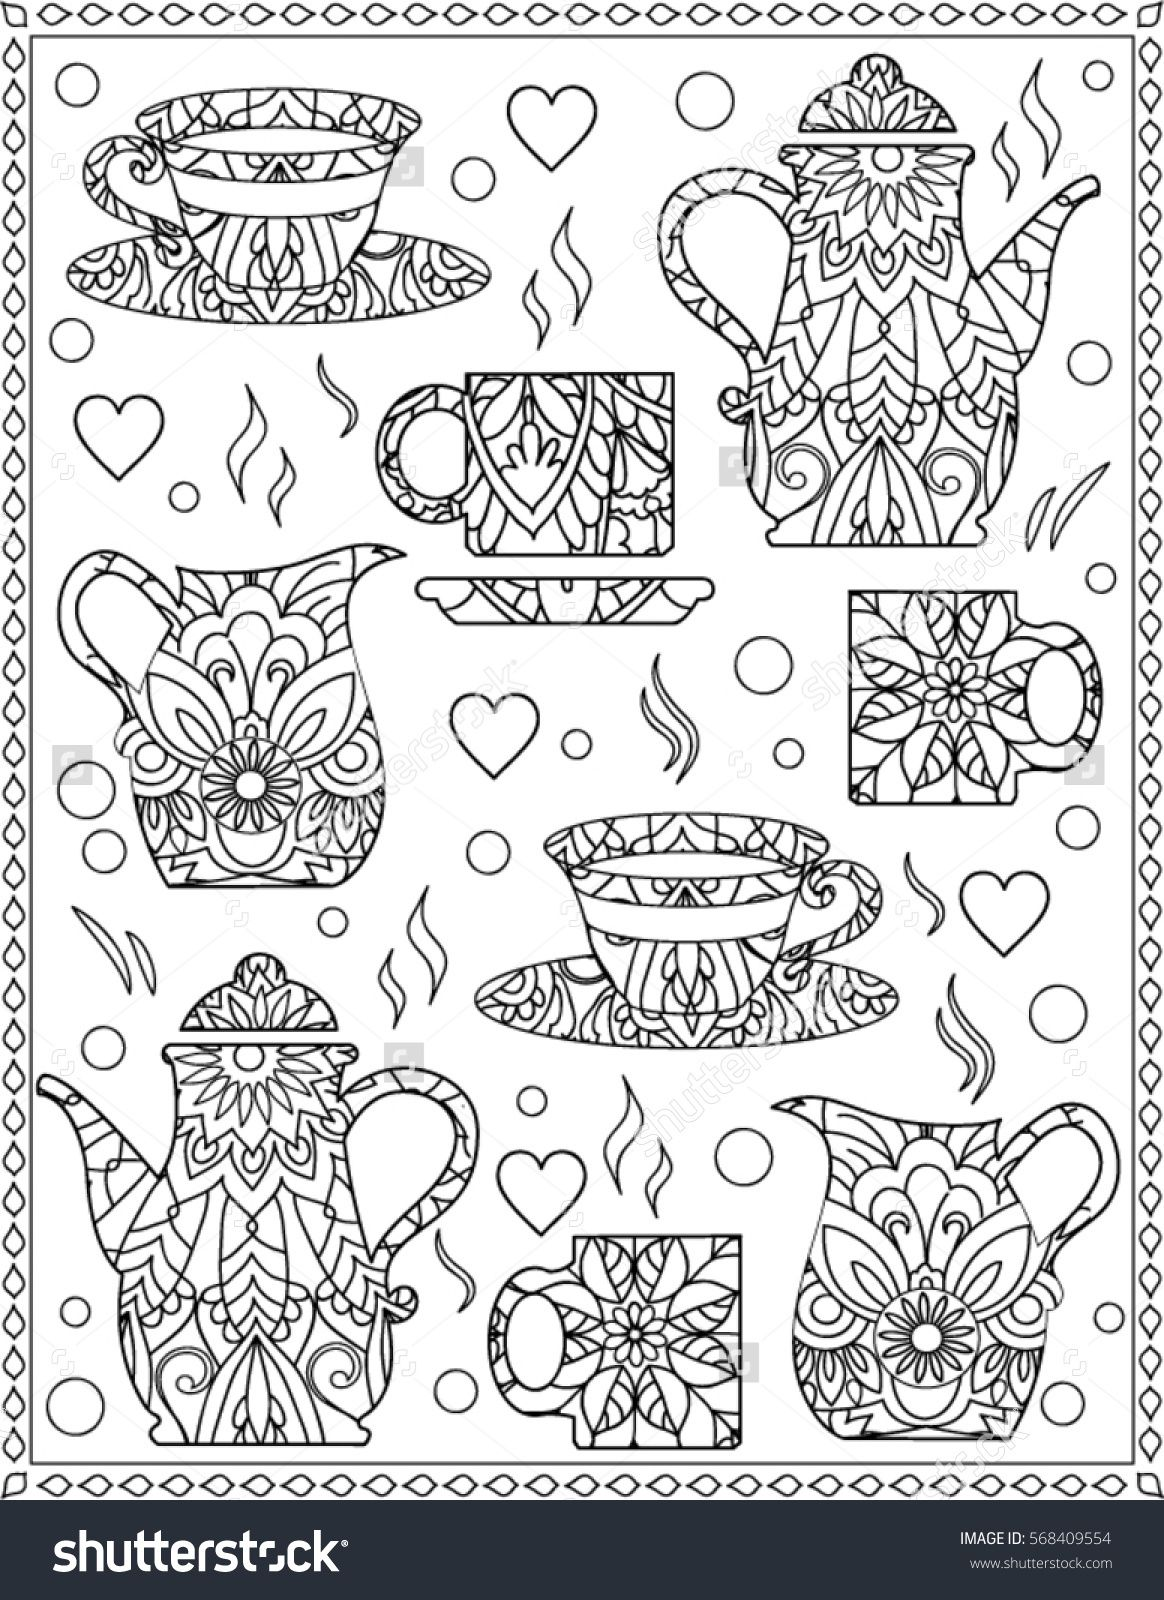 Coffee Cup Coloring Page Shutterstock 568409554 Coloring Pages Pattern Coloring Pages Free Coloring Pages [ 1600 x 1164 Pixel ]